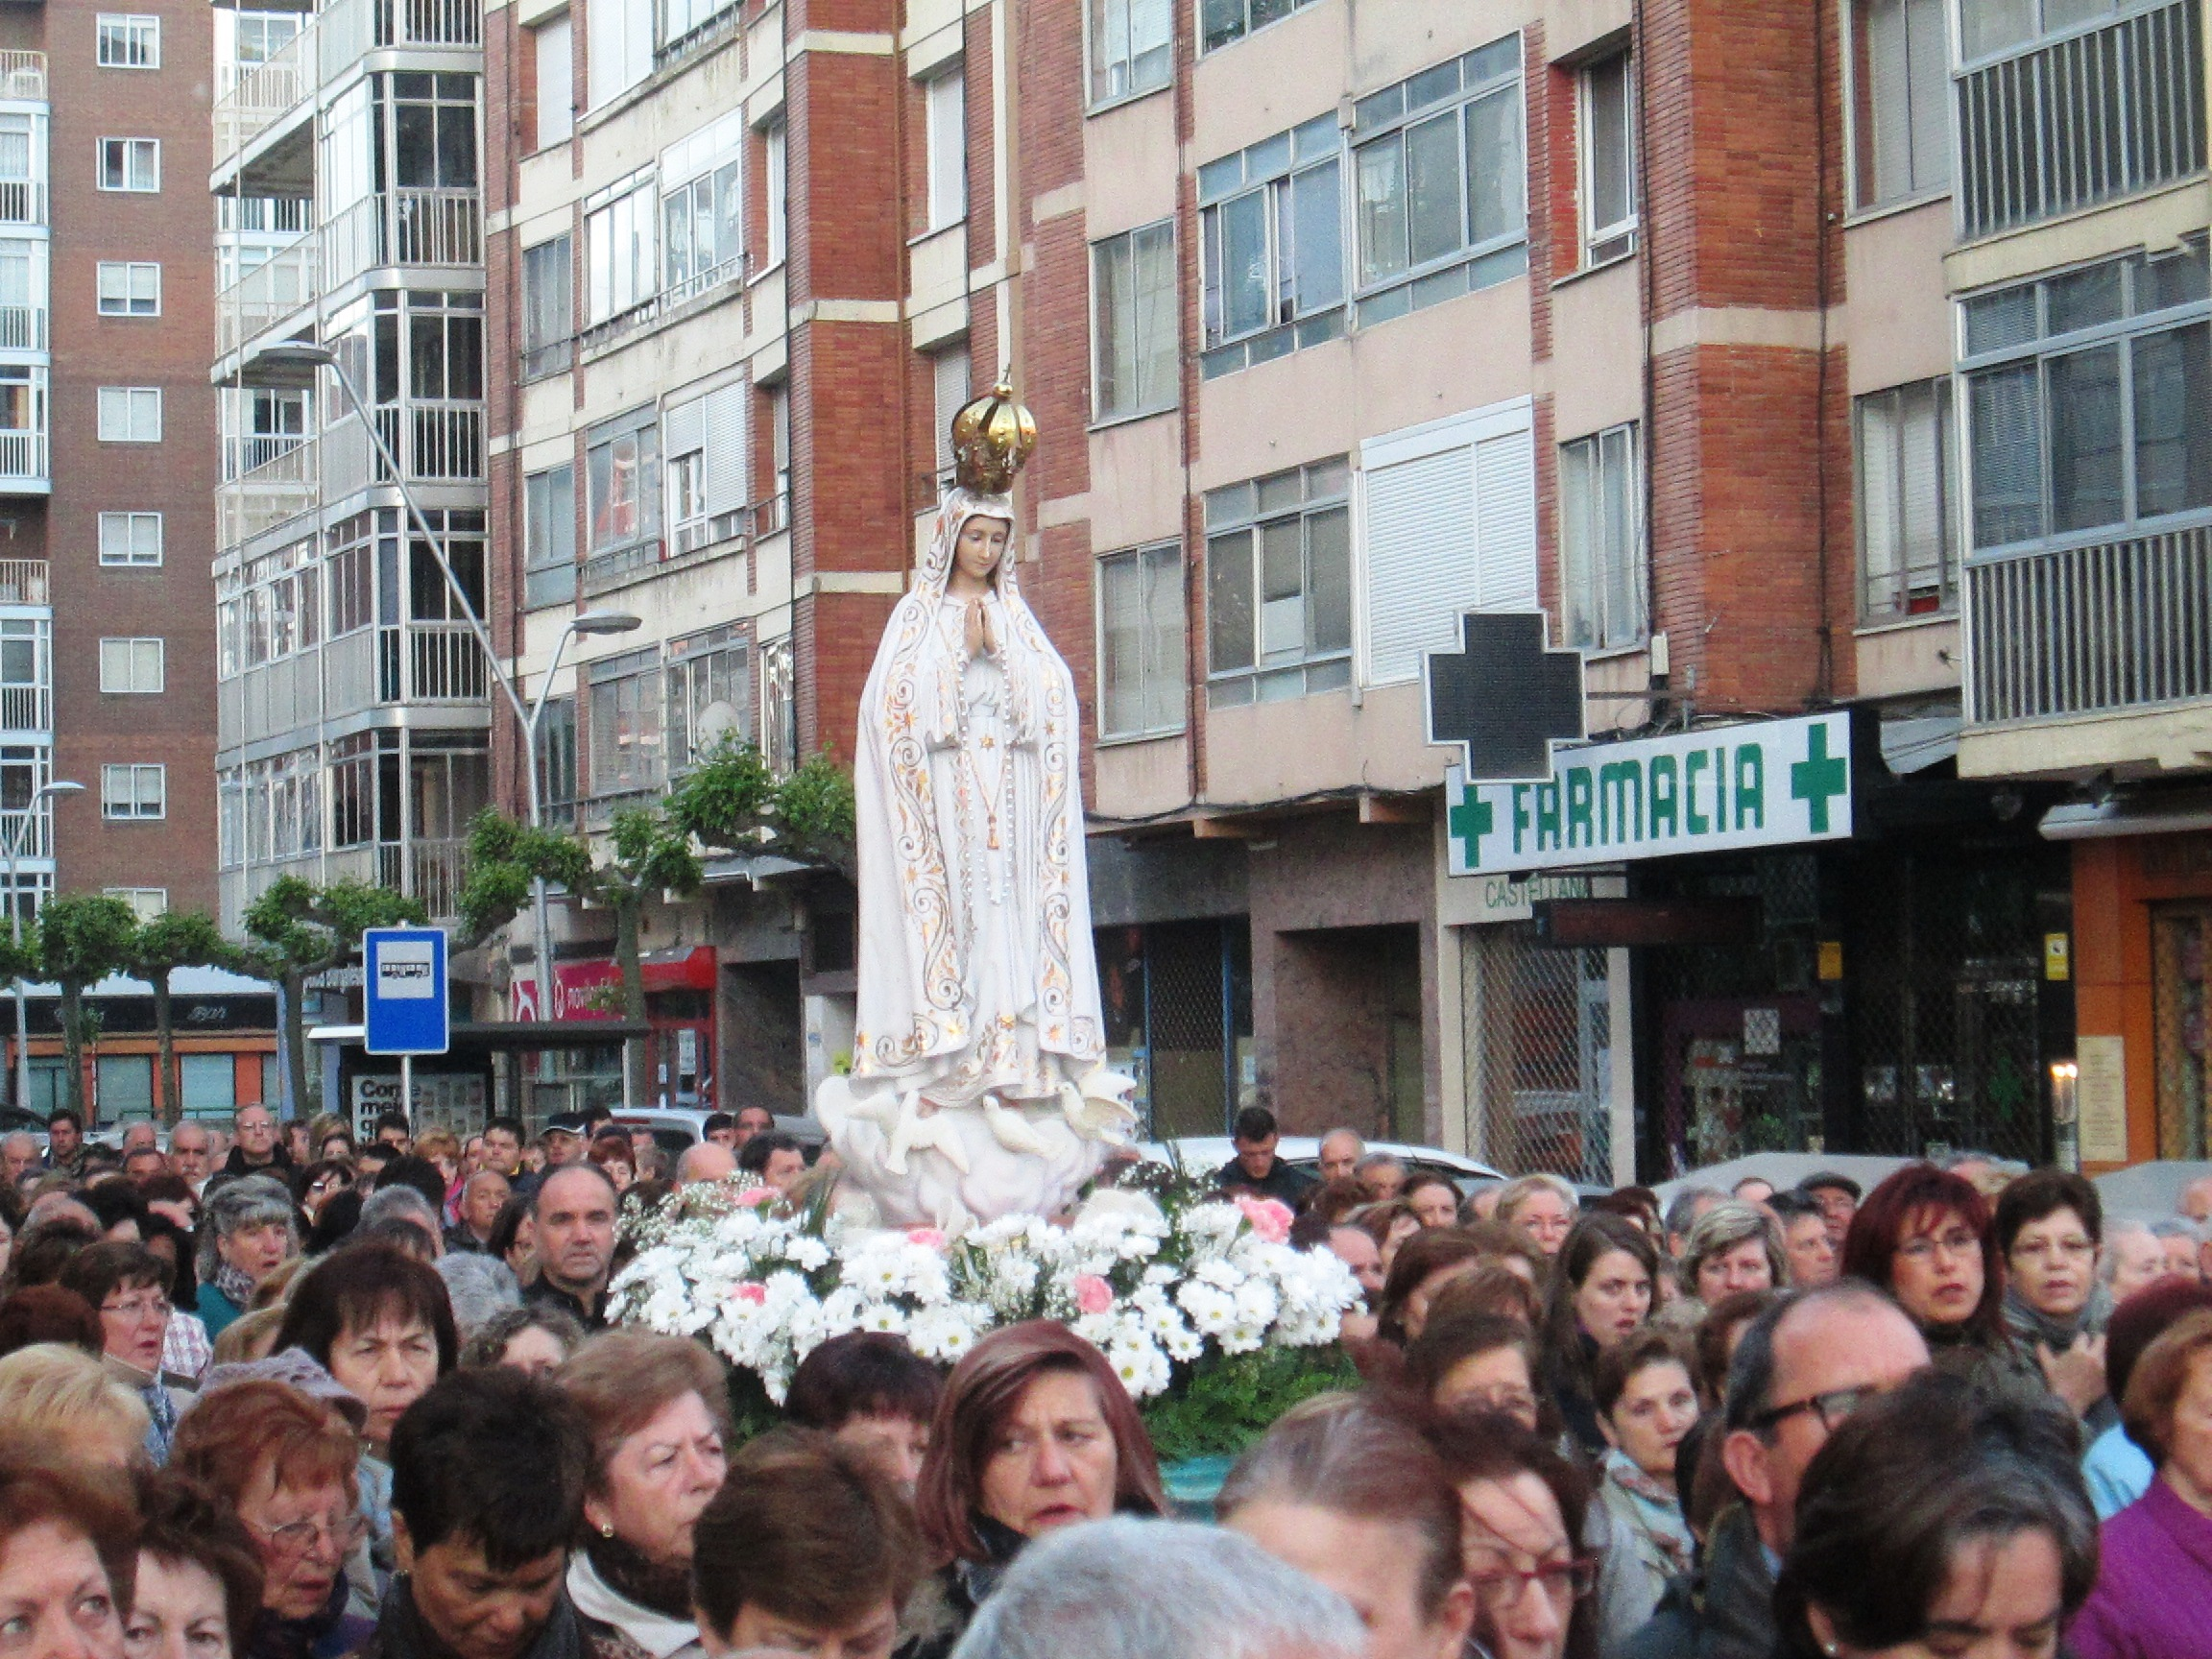 Foto: noticiasburgos.com